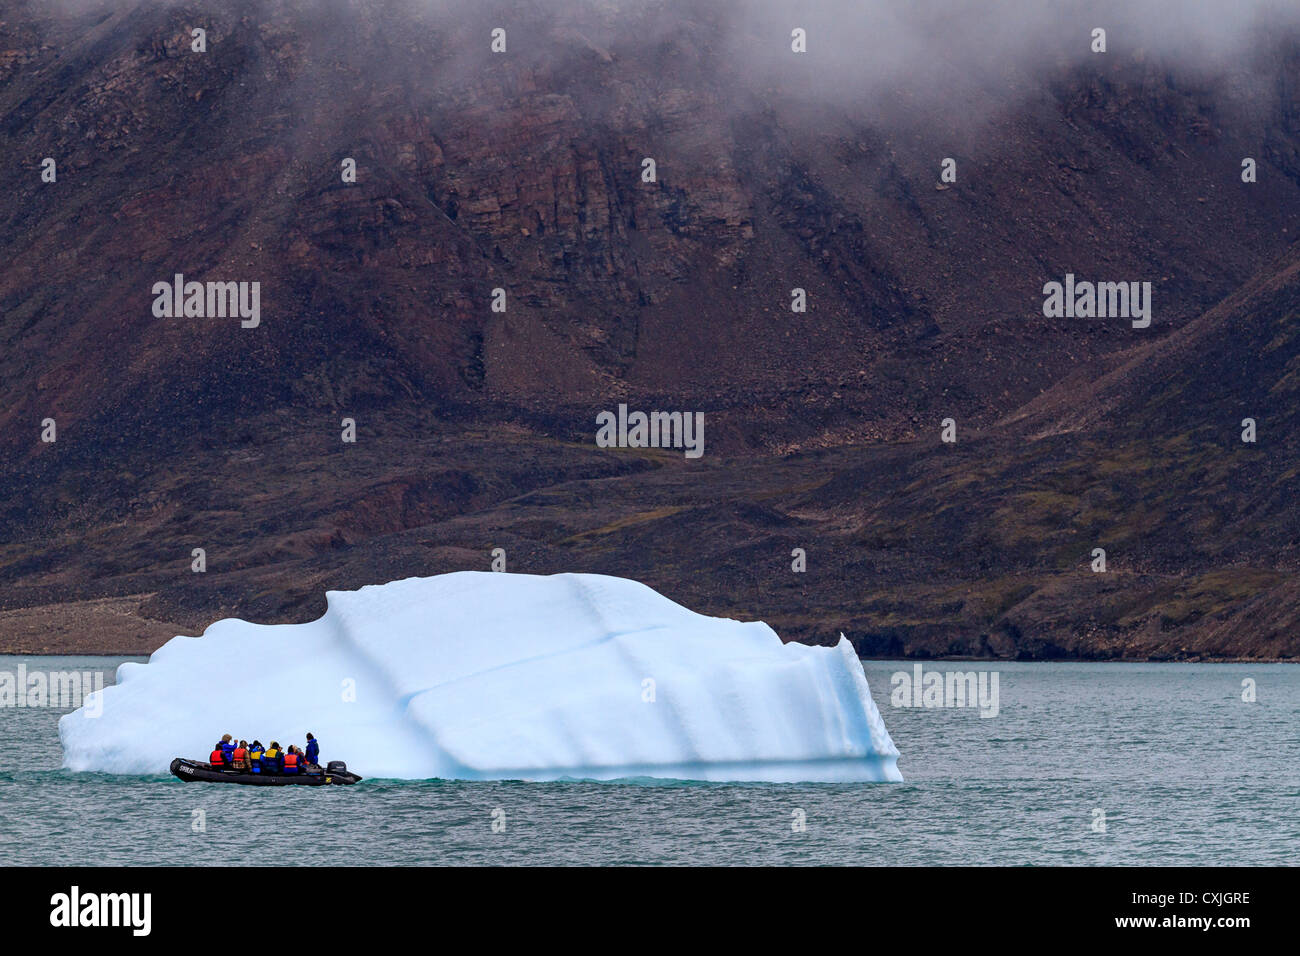 Zodiac boat with tourists coasts by small iceberg in Nunavut, Canada. Summer, high arctic. - Stock Image